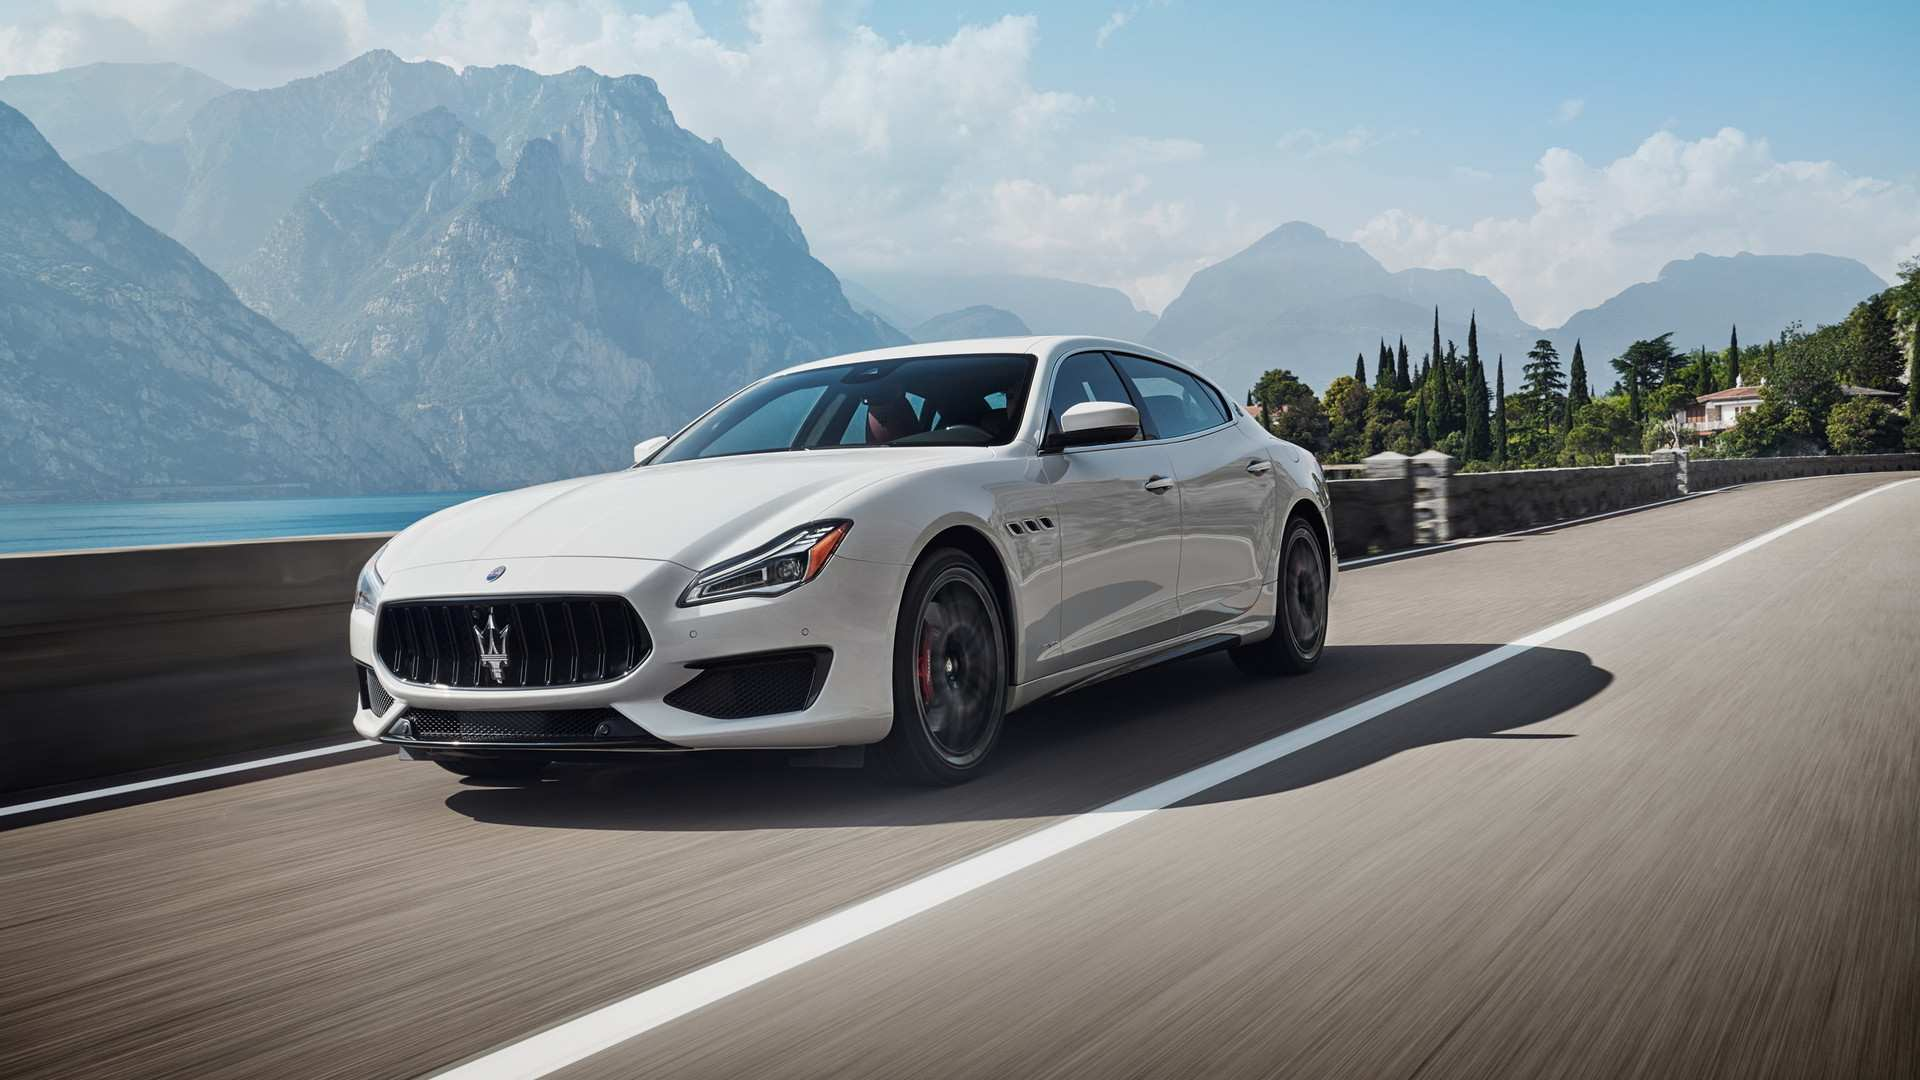 70 The 2019 Maserati Gt Wallpaper for 2019 Maserati Gt